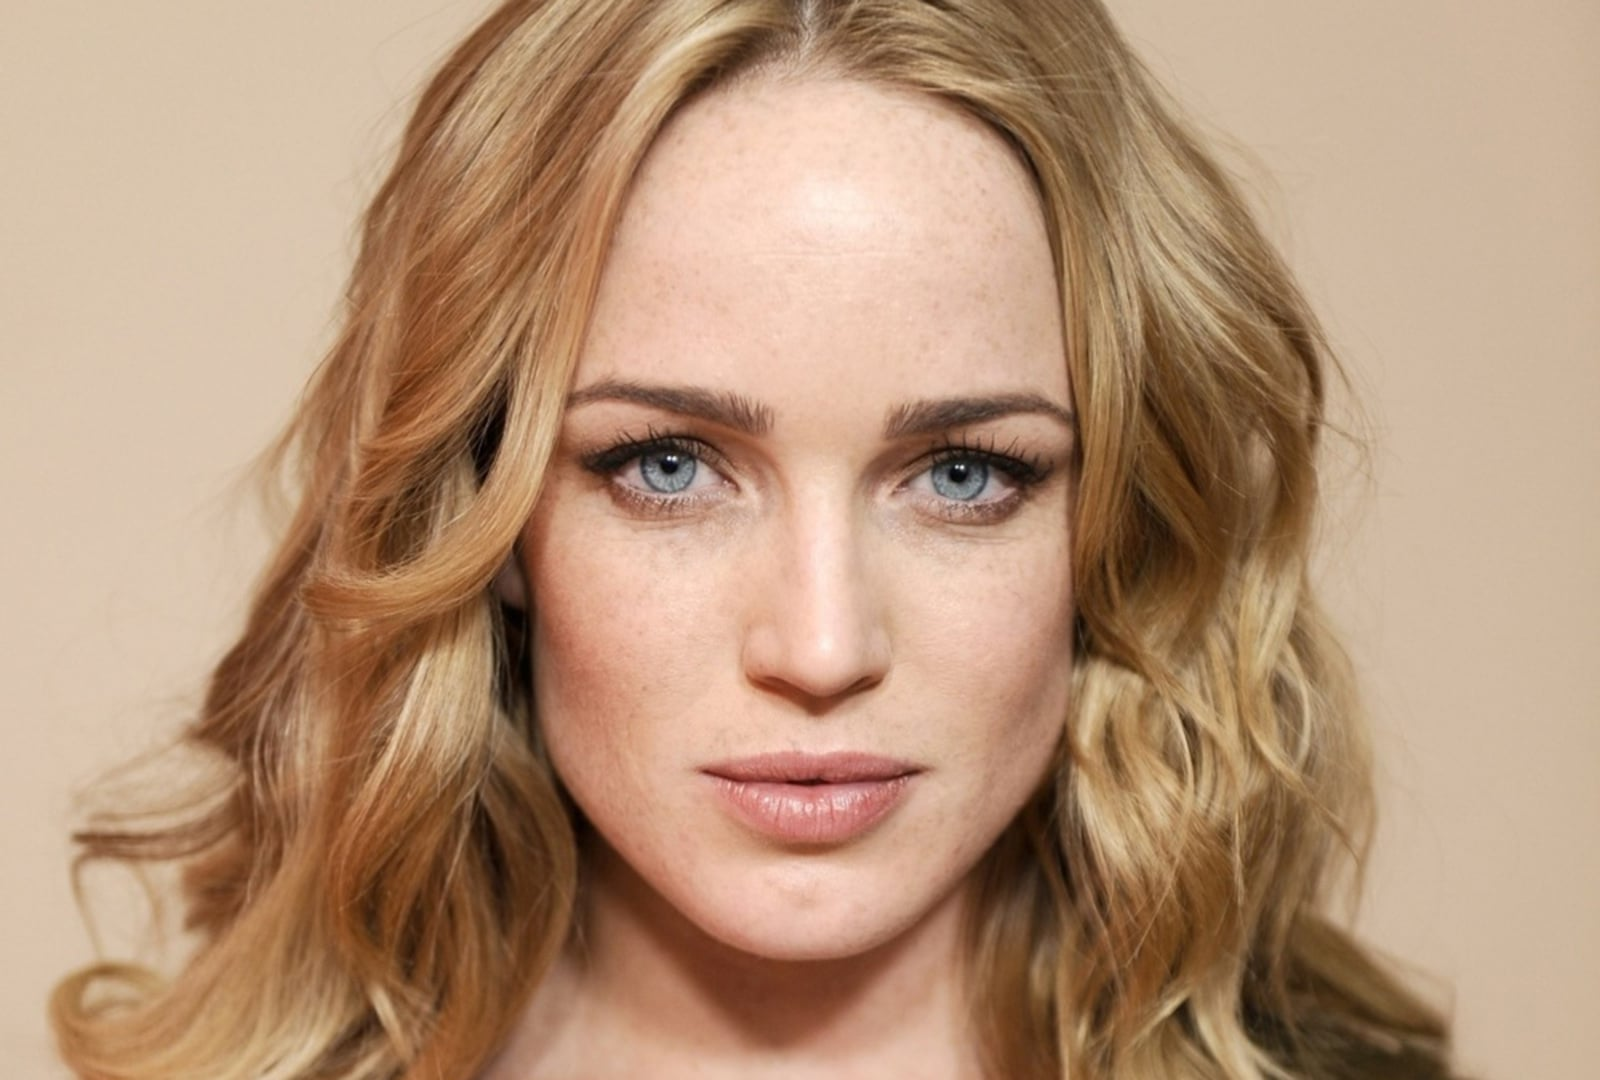 Hd Wallpapers Car Girls Caity Lotz Hd Wallpapers Free Download